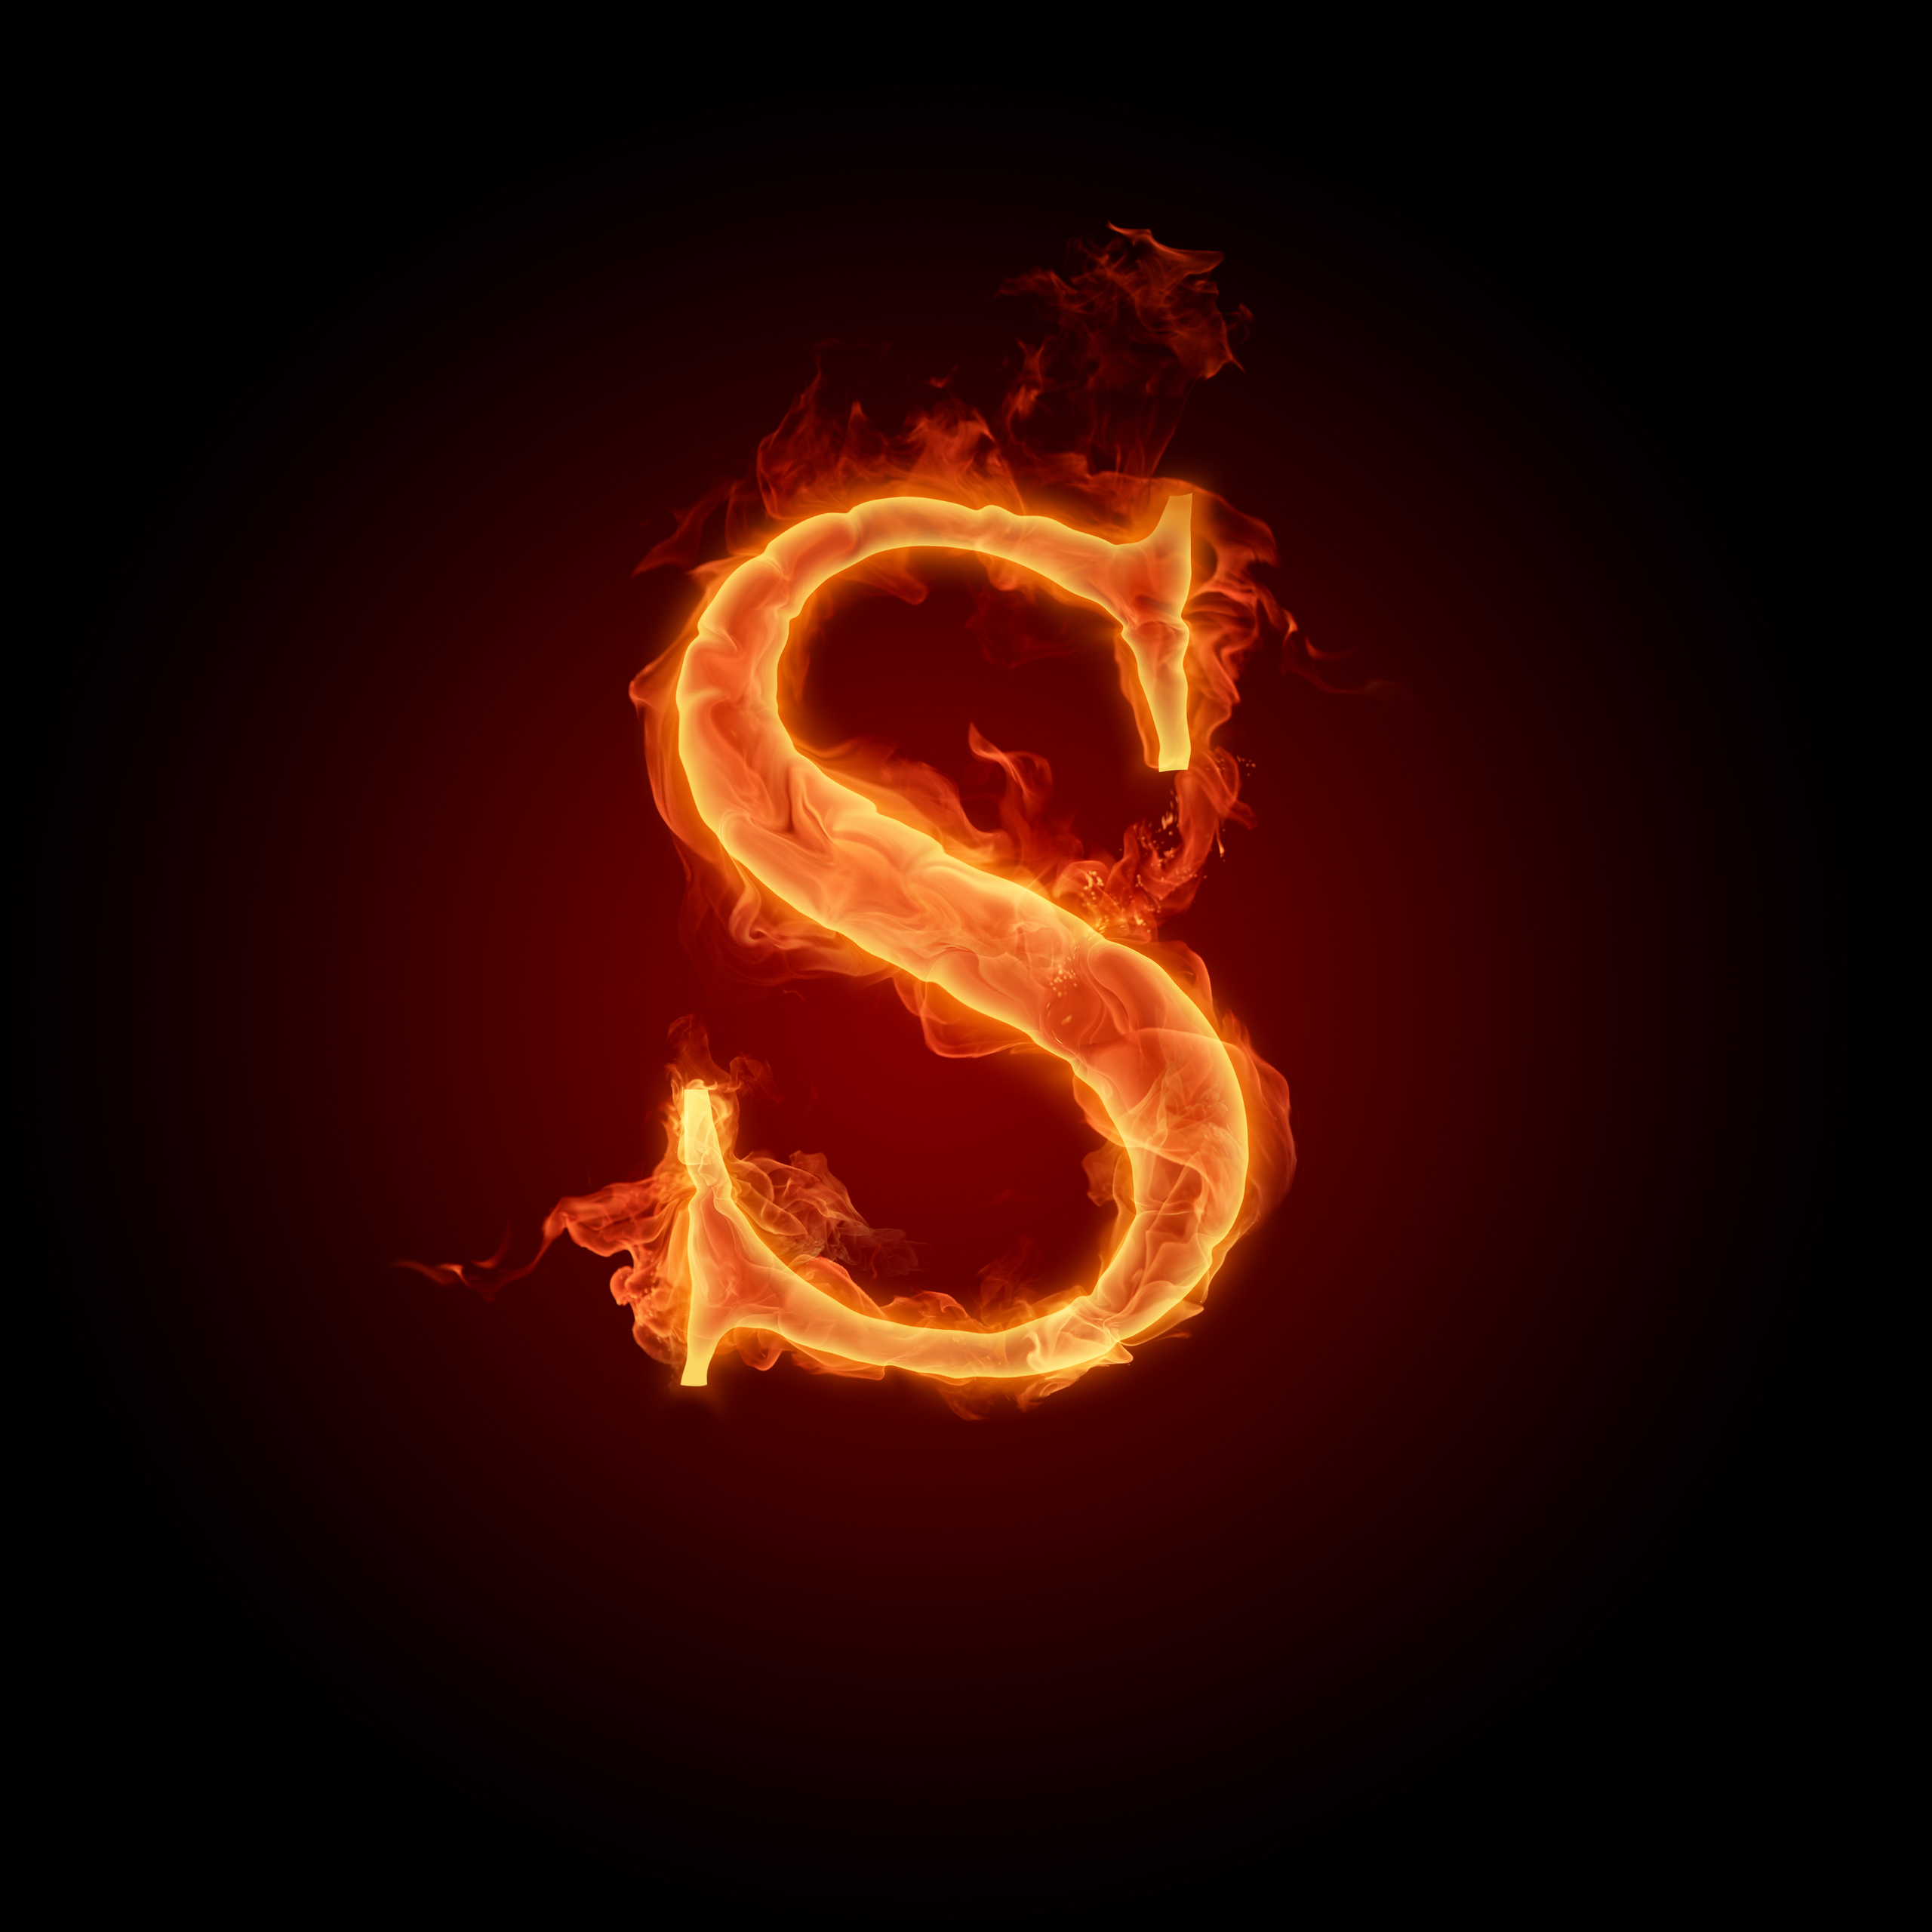 The letter s images the letter s hd wallpaper and background photos the letter s images the letter s hd wallpaper and background photos thecheapjerseys Gallery